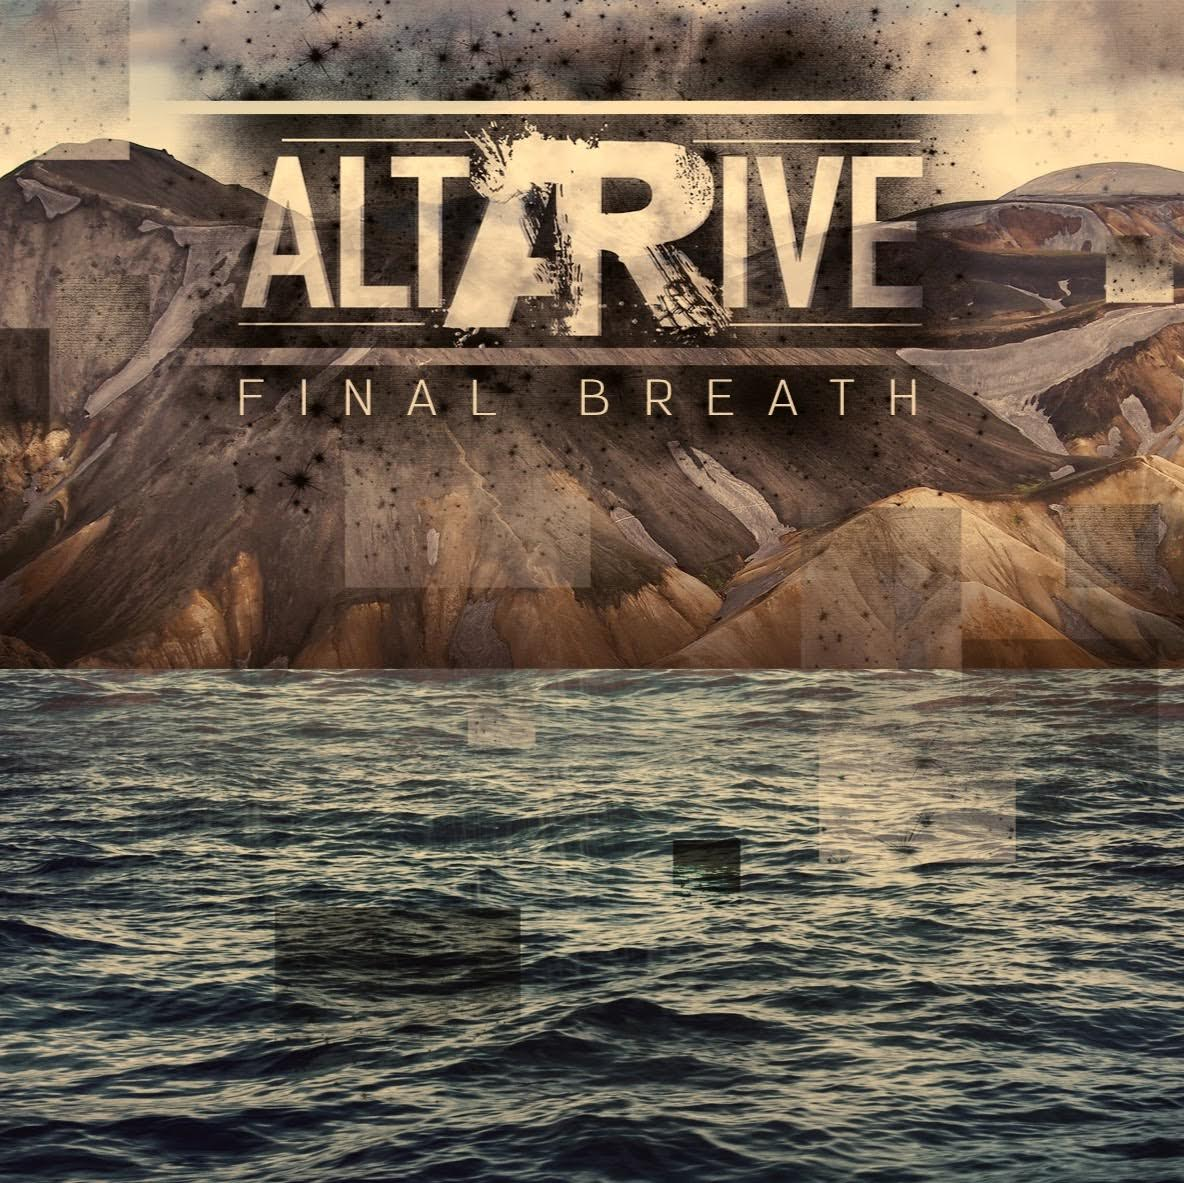 Altarive Final breath